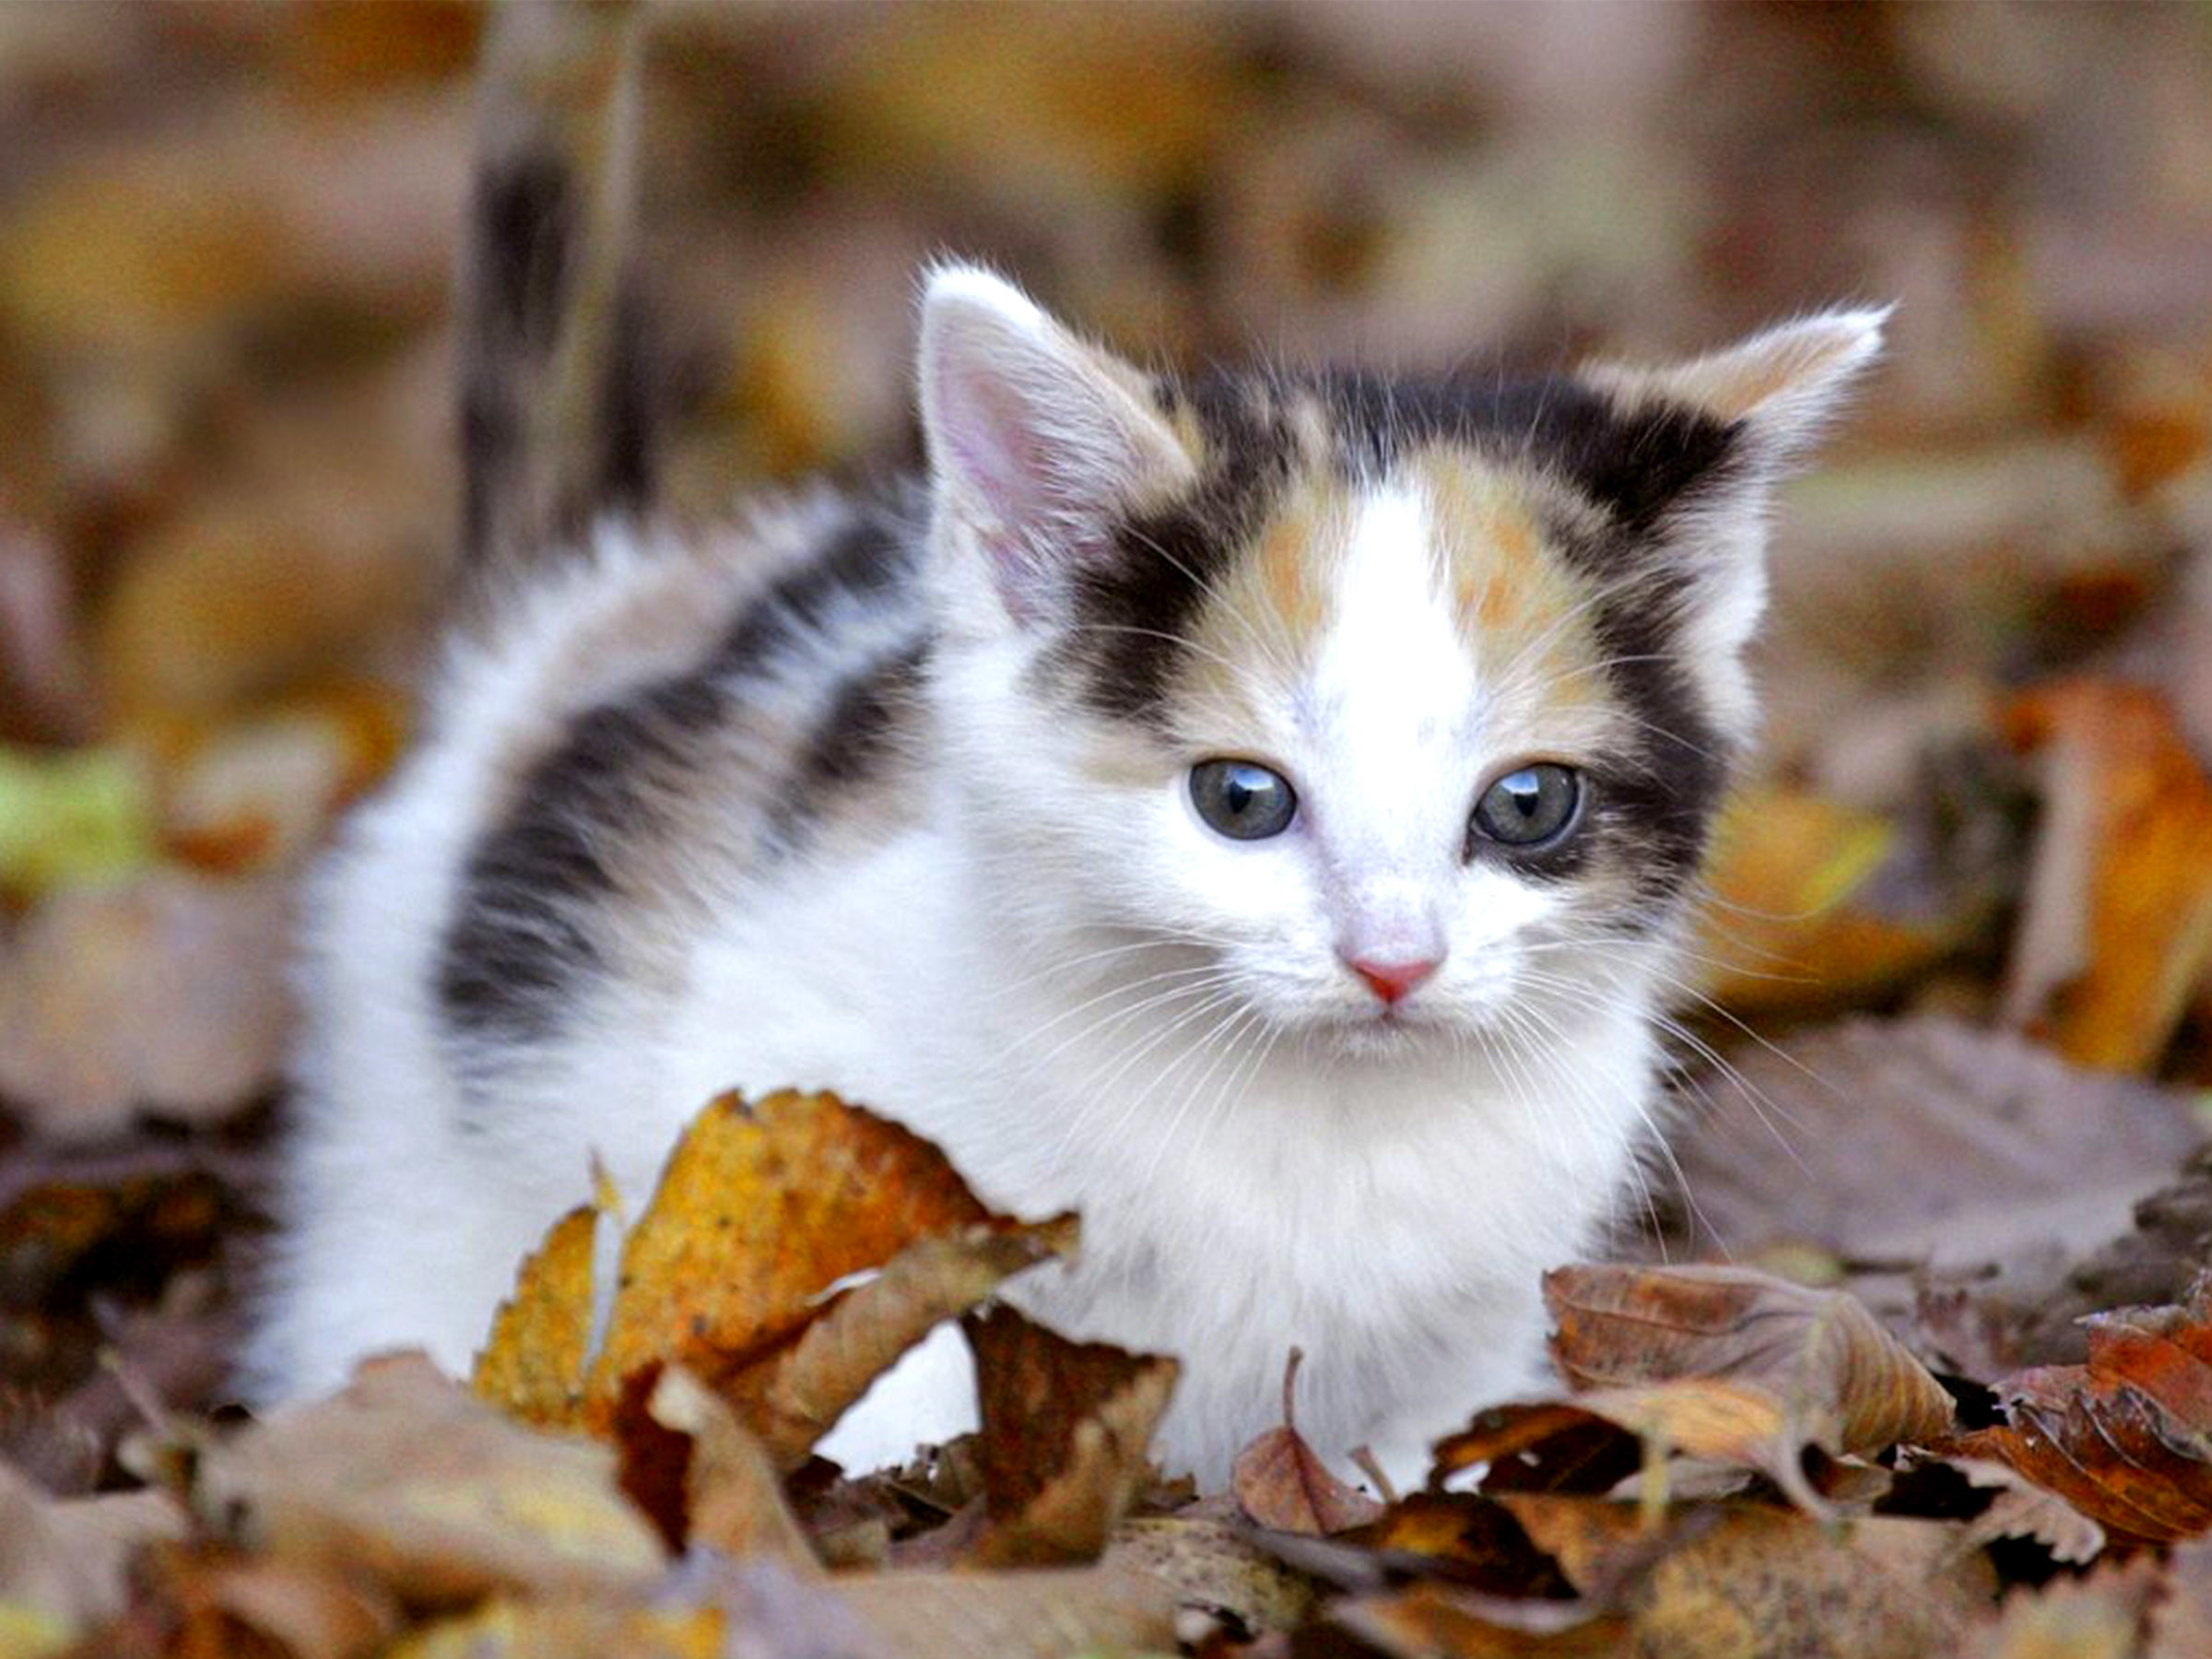 Cat wallpaper and screensavers 63 images - Kitten backgrounds ...